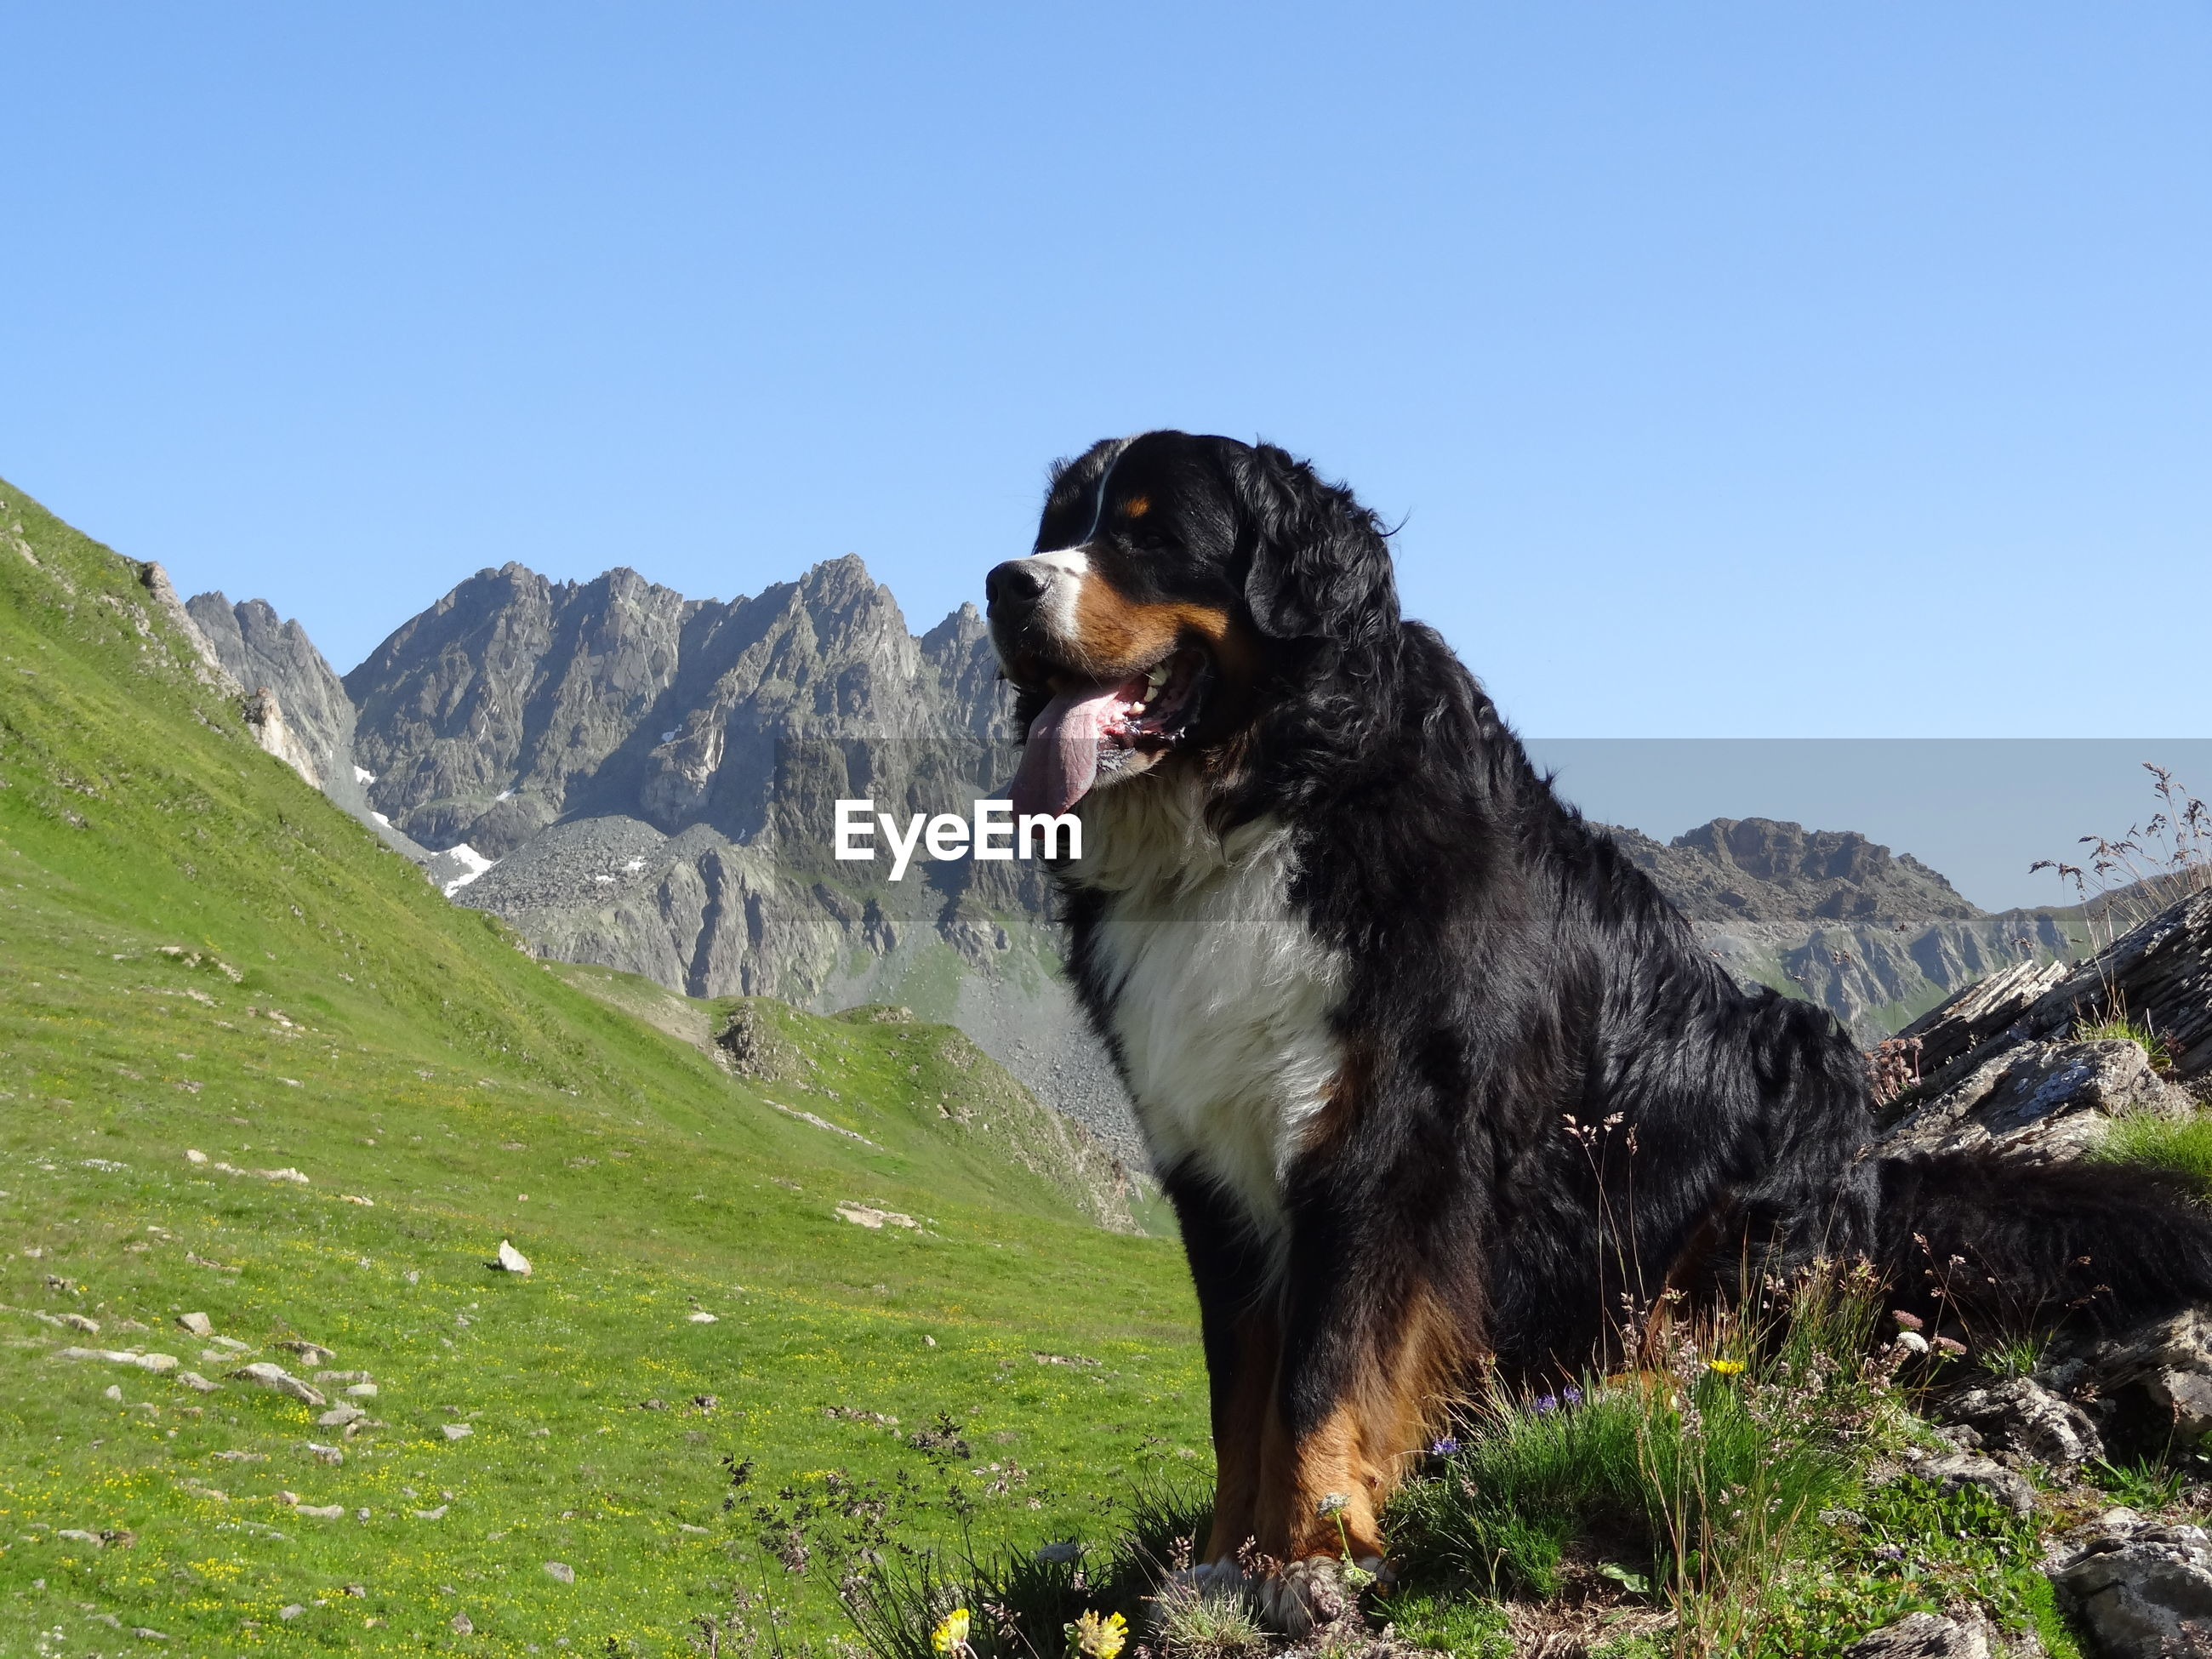 DOG SITTING ON GRASS AGAINST MOUNTAINS